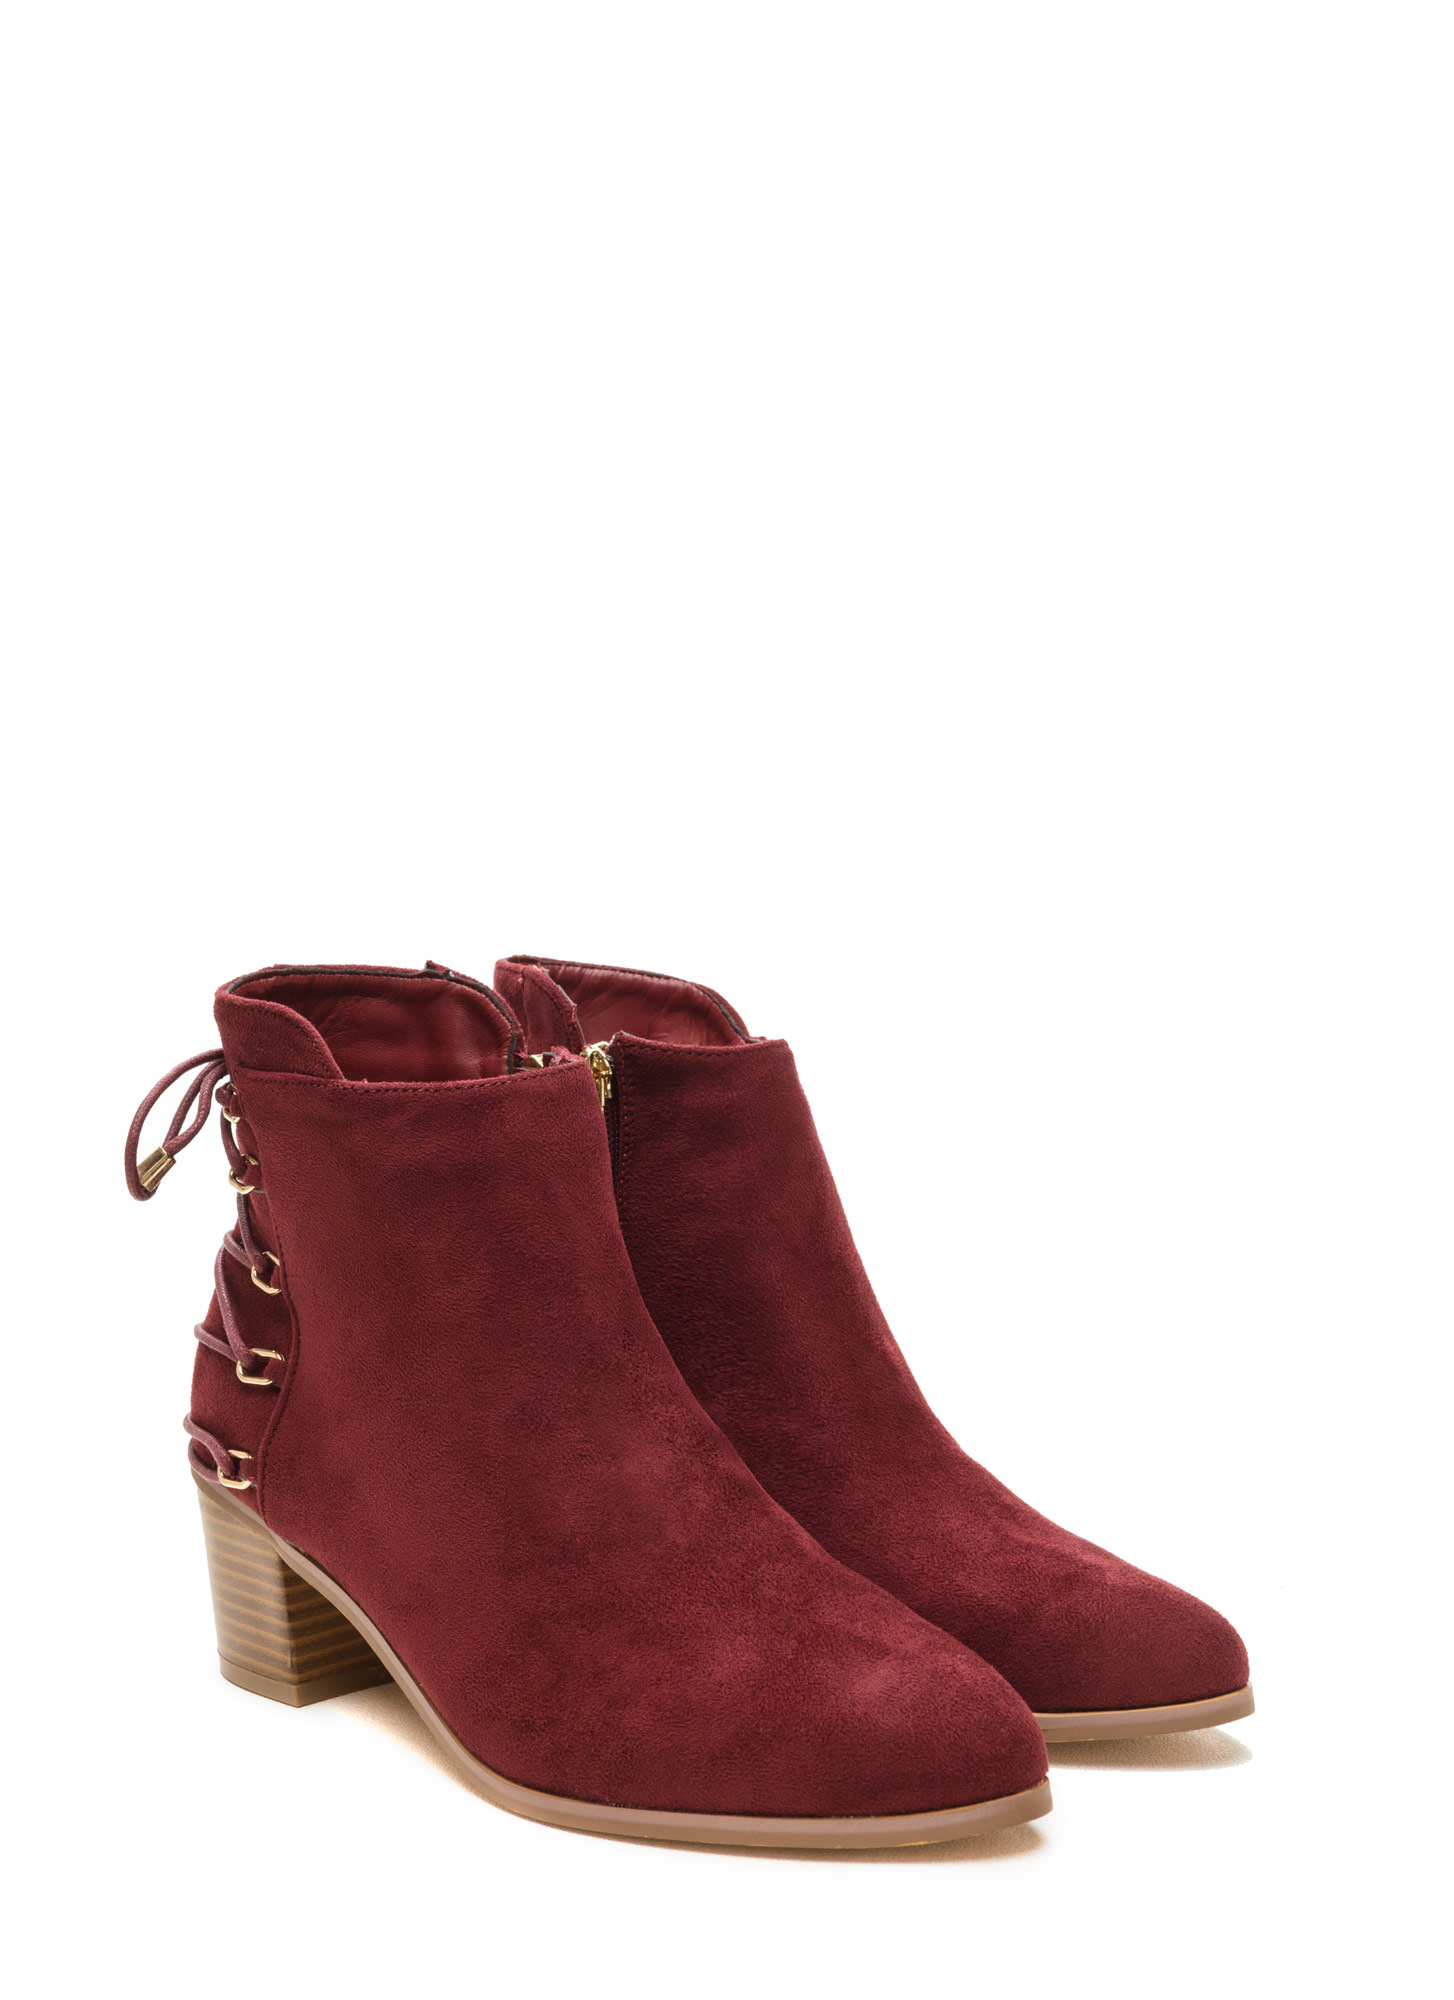 Ring Leader Lace-Up Chunky Booties WINE